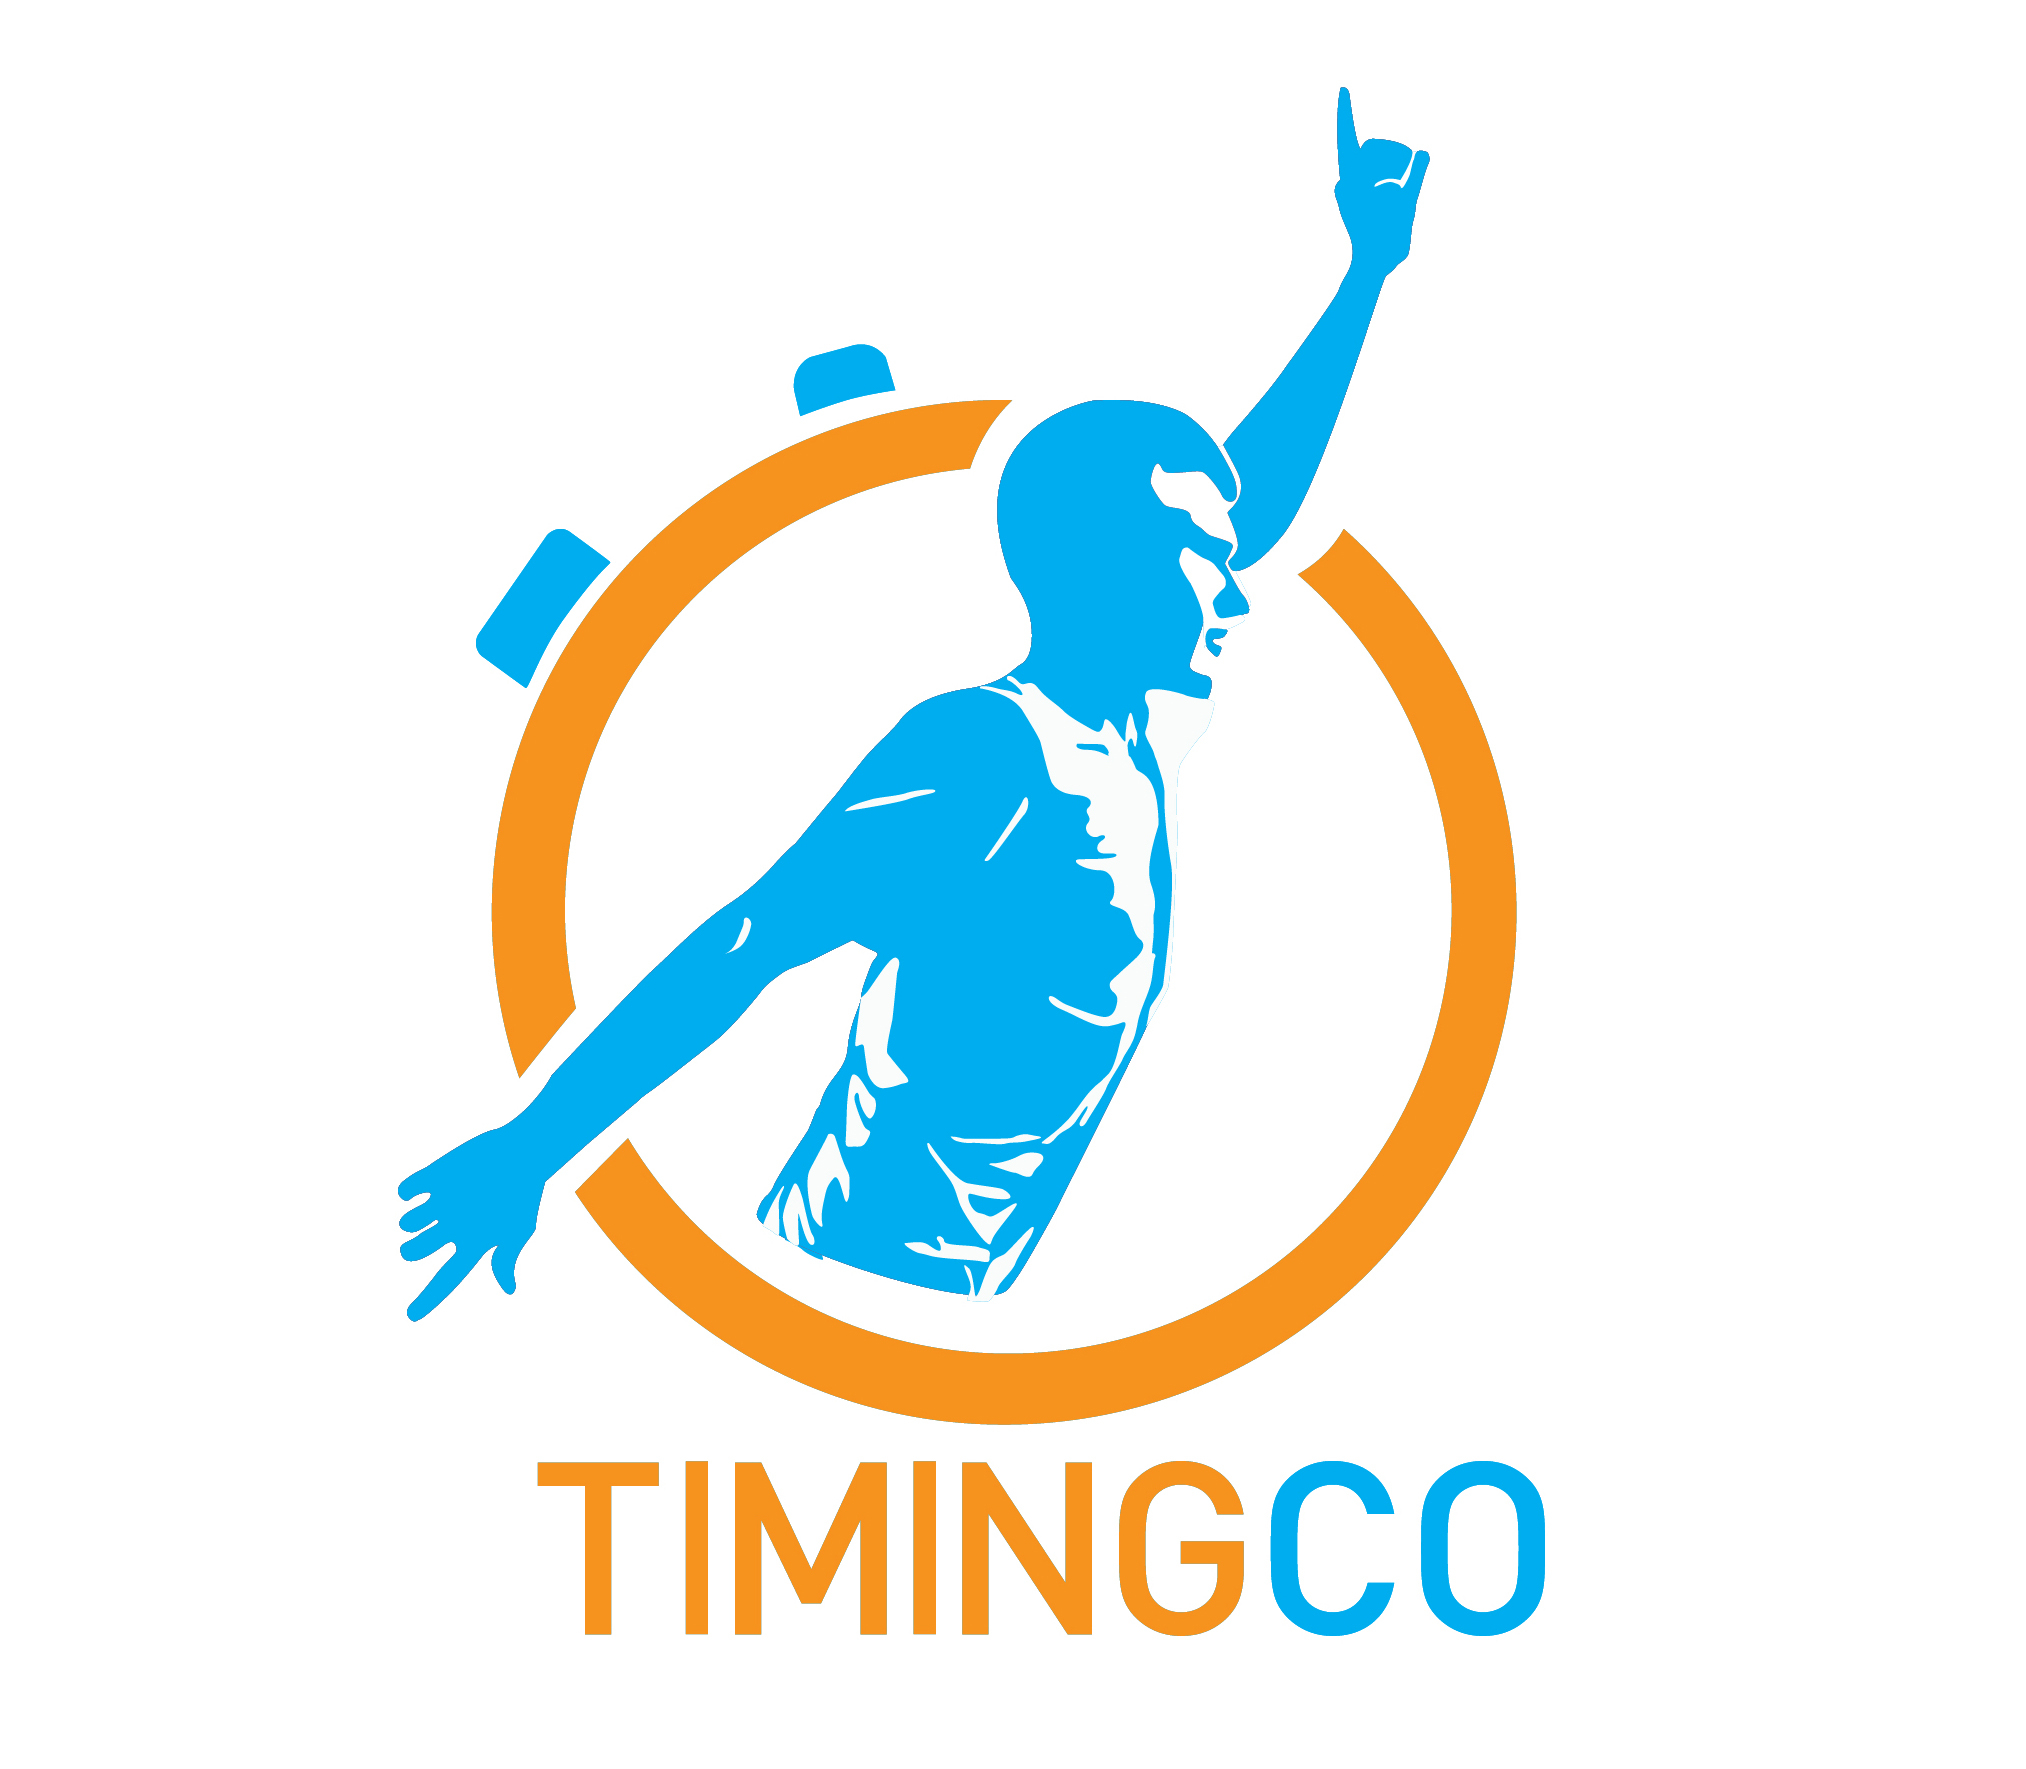 logo timingco